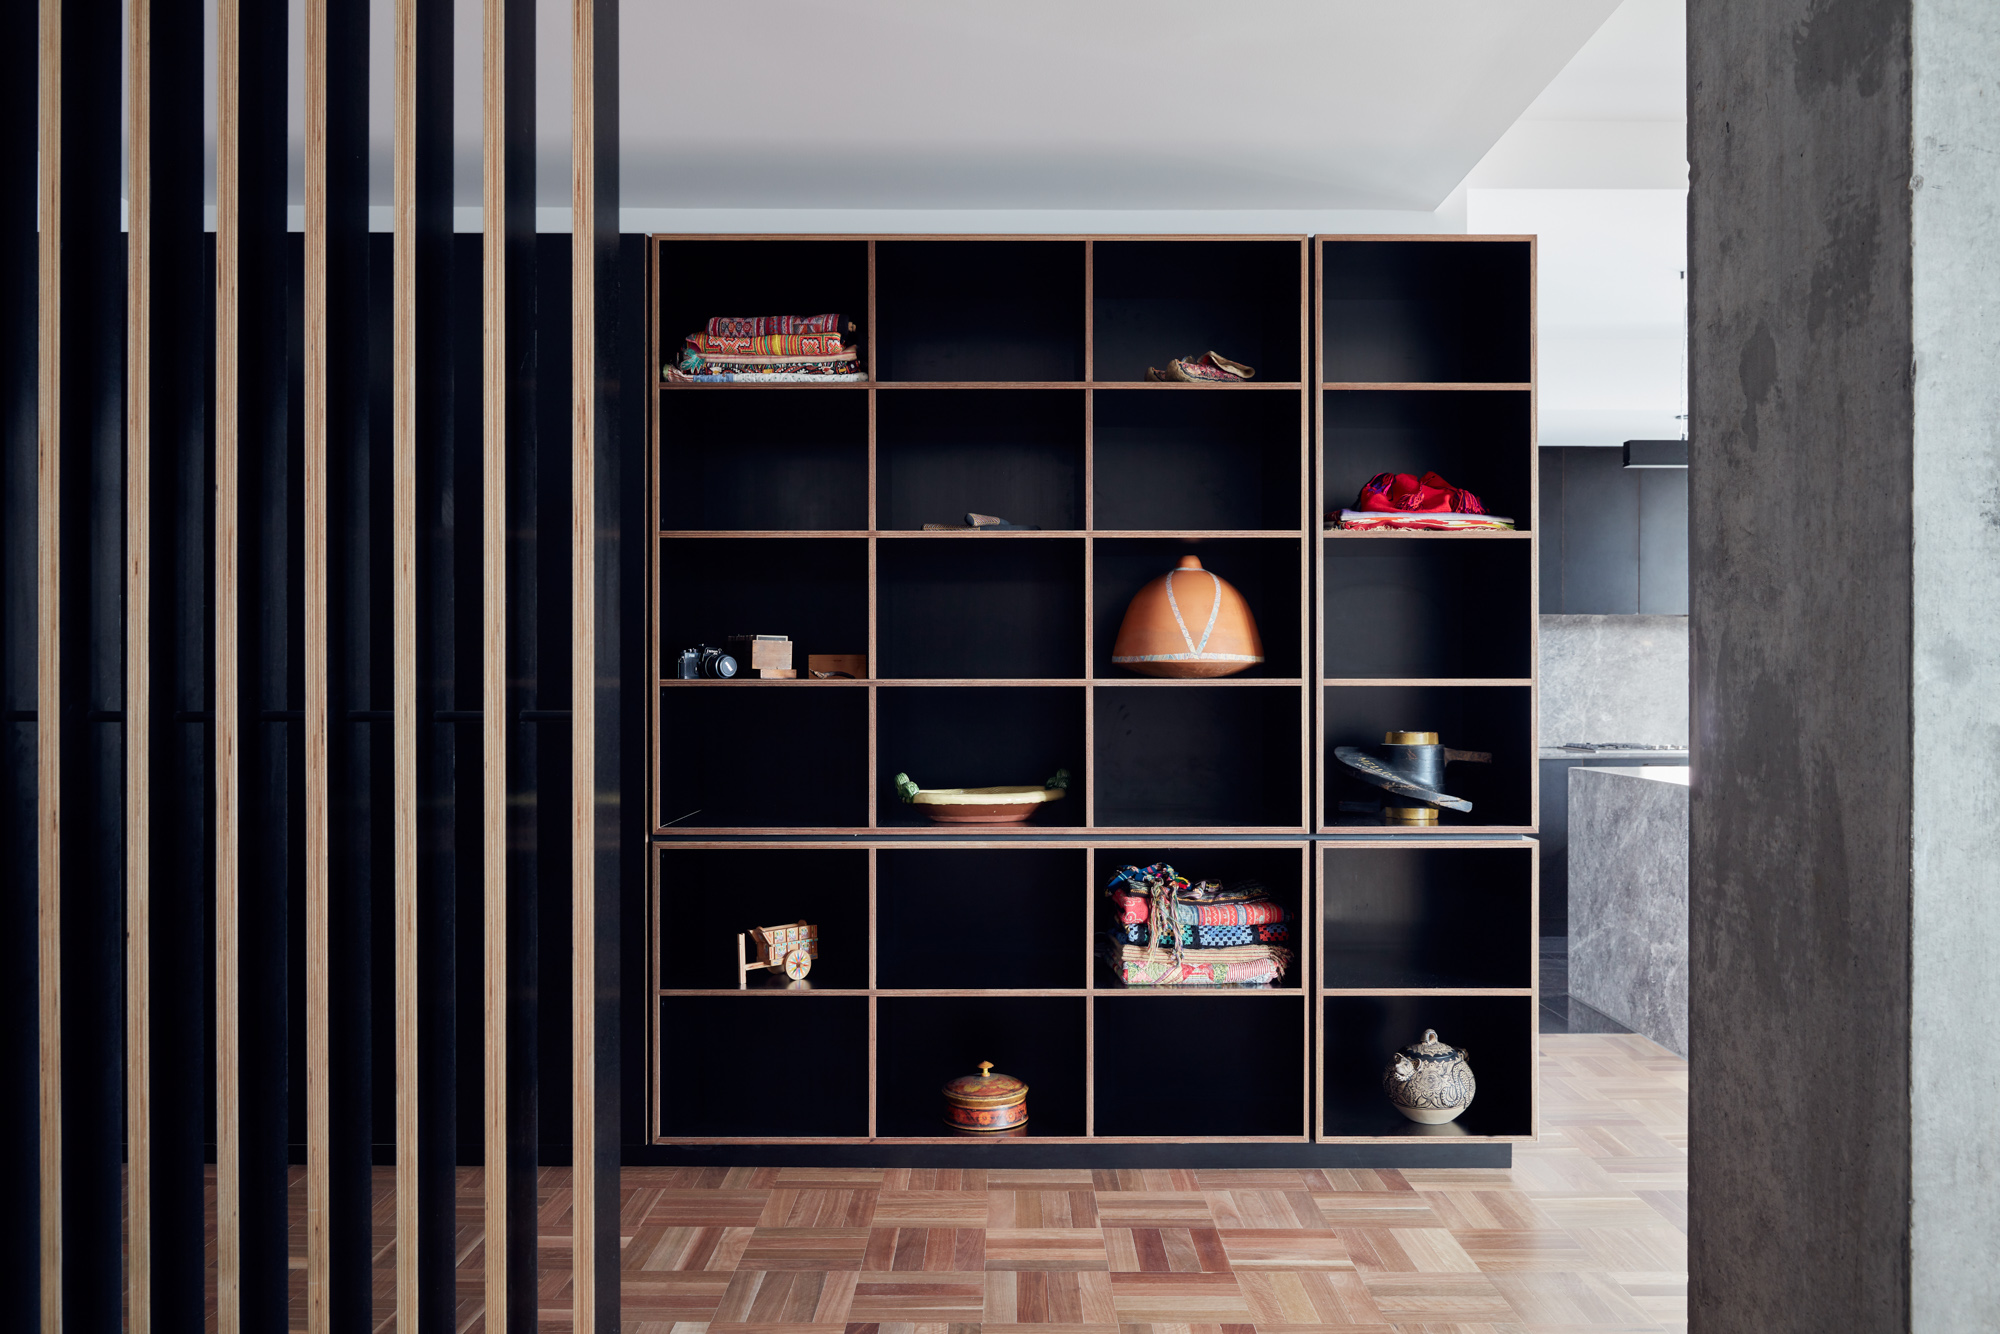 Gallery Of Queen Street Apartment By Alana Cooke Local Australian Architecture & Interior Design, Melbourne Image 1